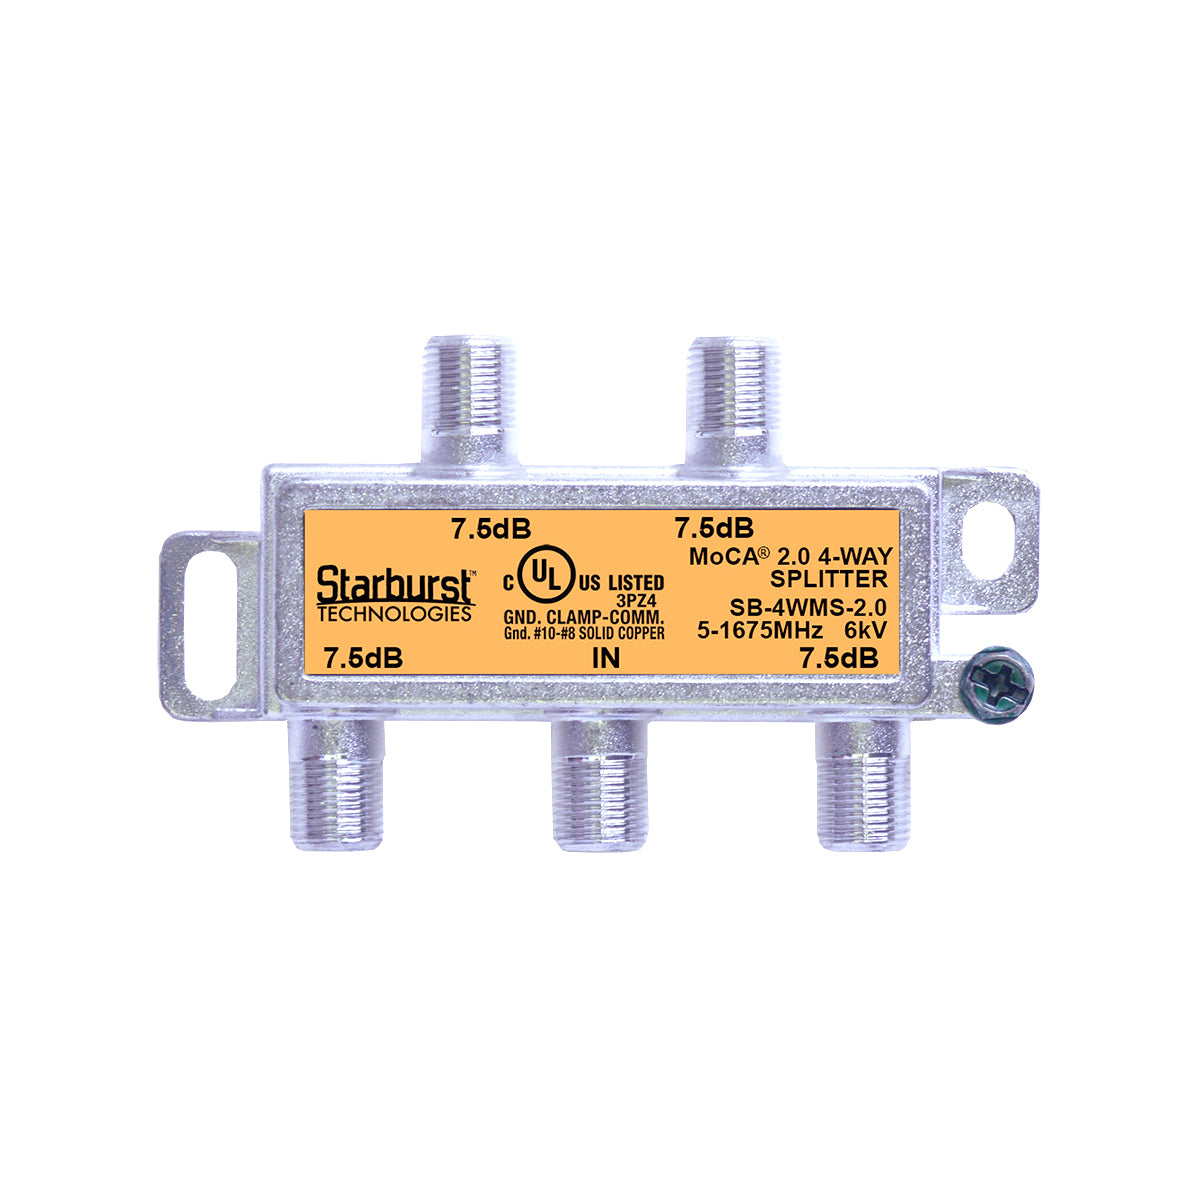 SB-4WMS-2.0 MoCA 2.0 Splitter 4 Way Horizontal 5-1675MHz Wide Band